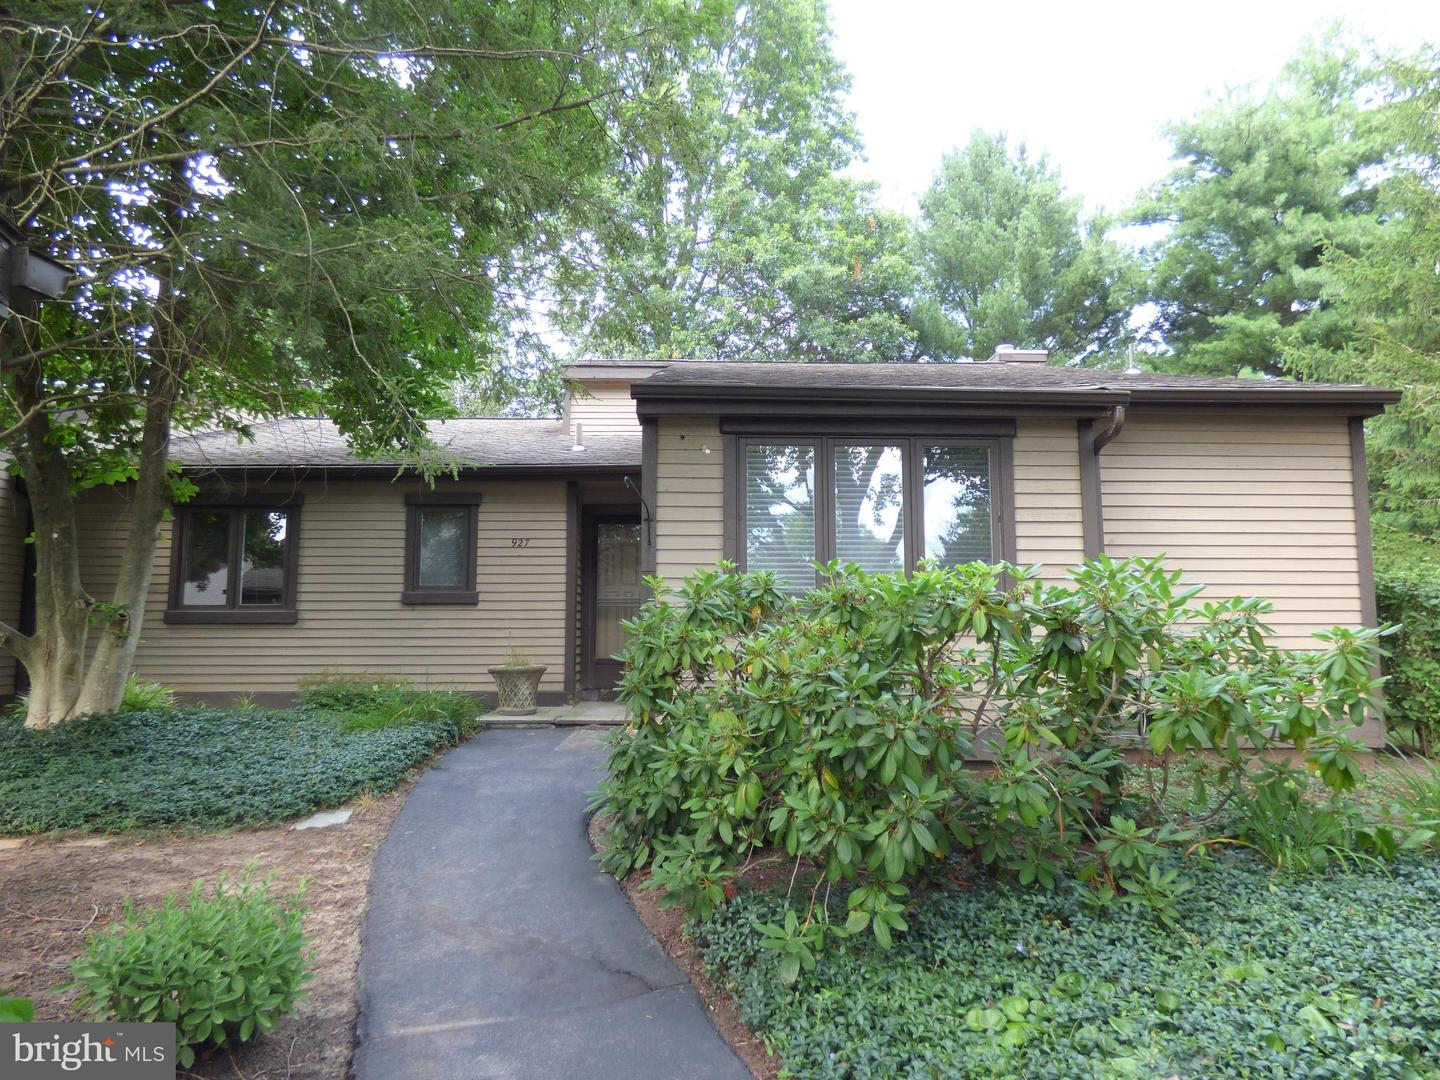 927 Jefferson Way West Chester, PA 19380